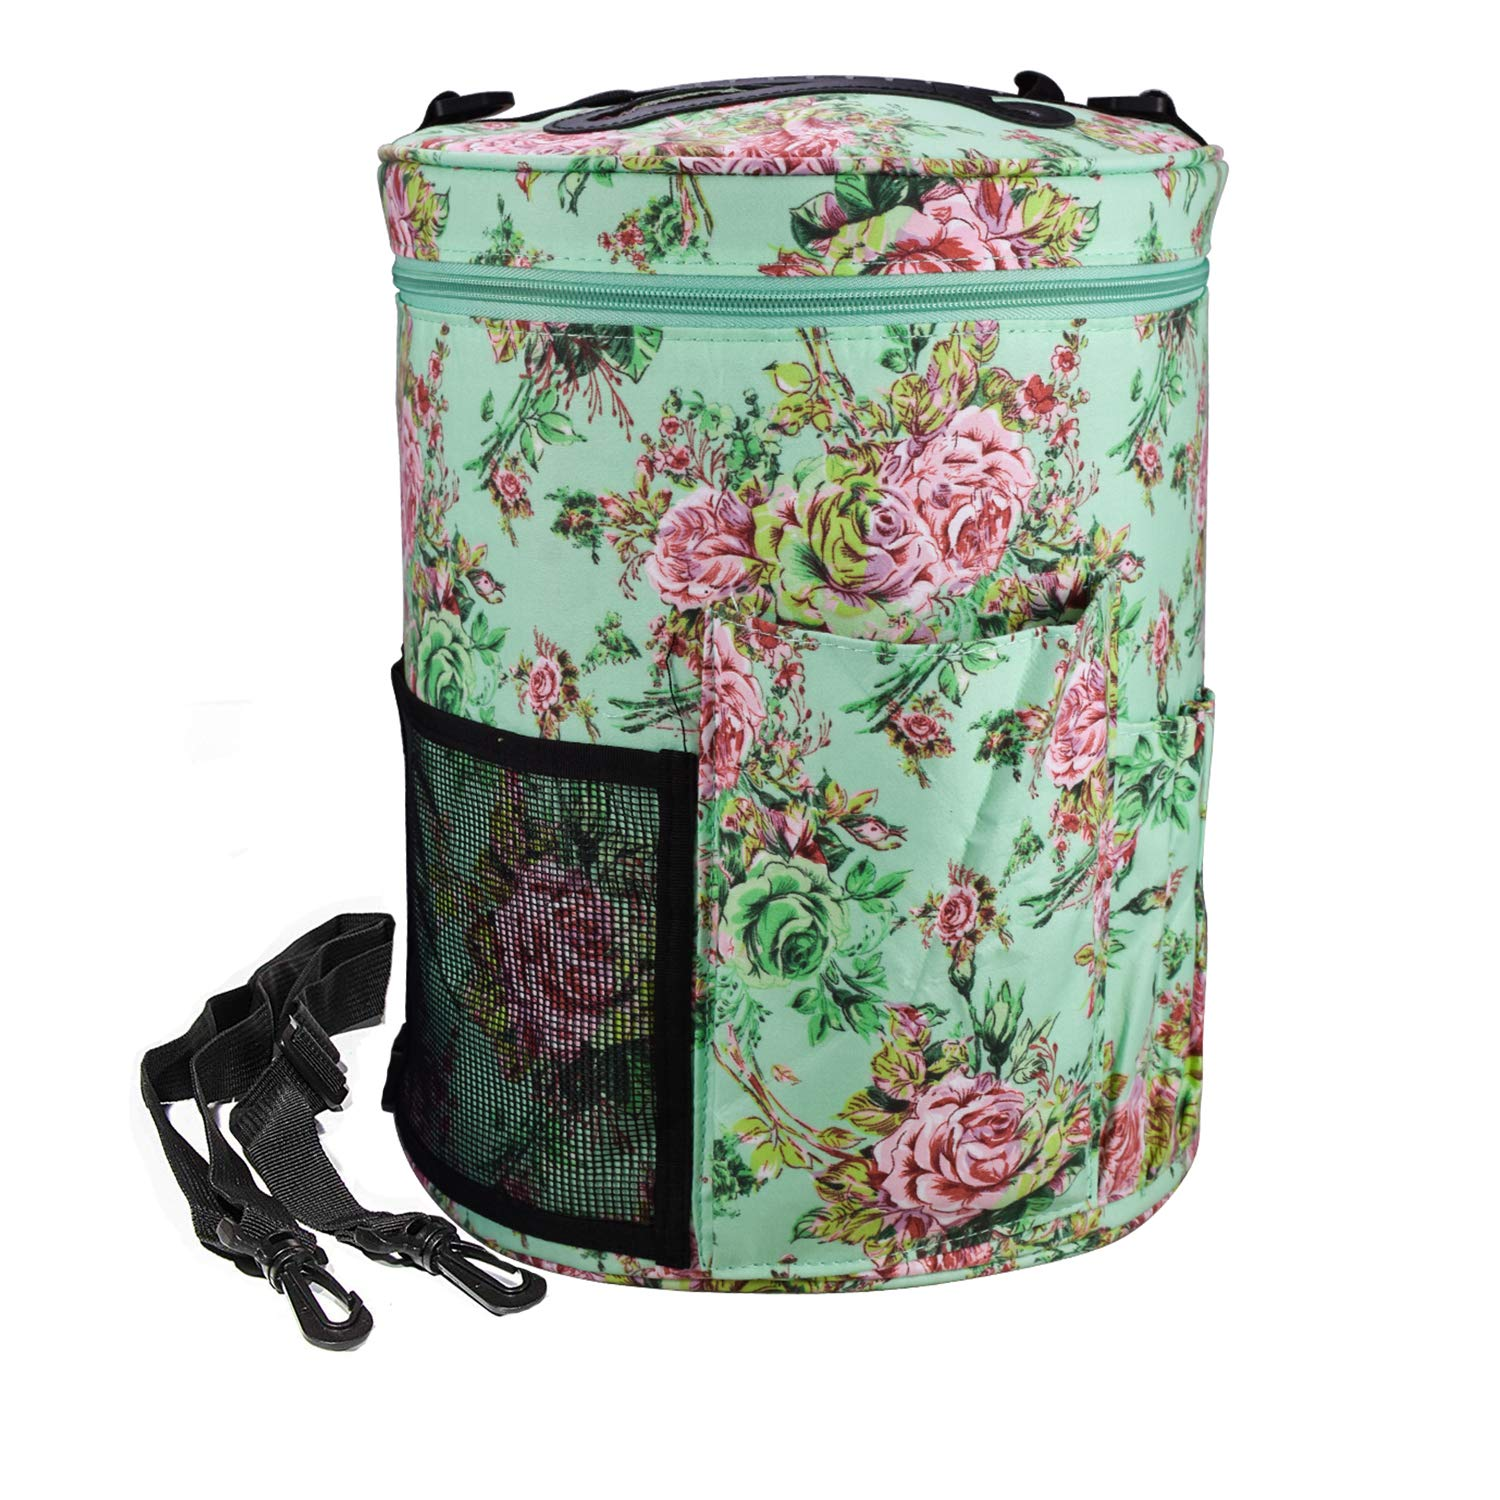 Large Capacity/Portable/Lightweight Yarn Storage Knitting Tote Organizer Bag with Shoulder Strap Handles Looen W/Pockets for Crochet Hooks & Knitting Needles ... (Peony Flower)